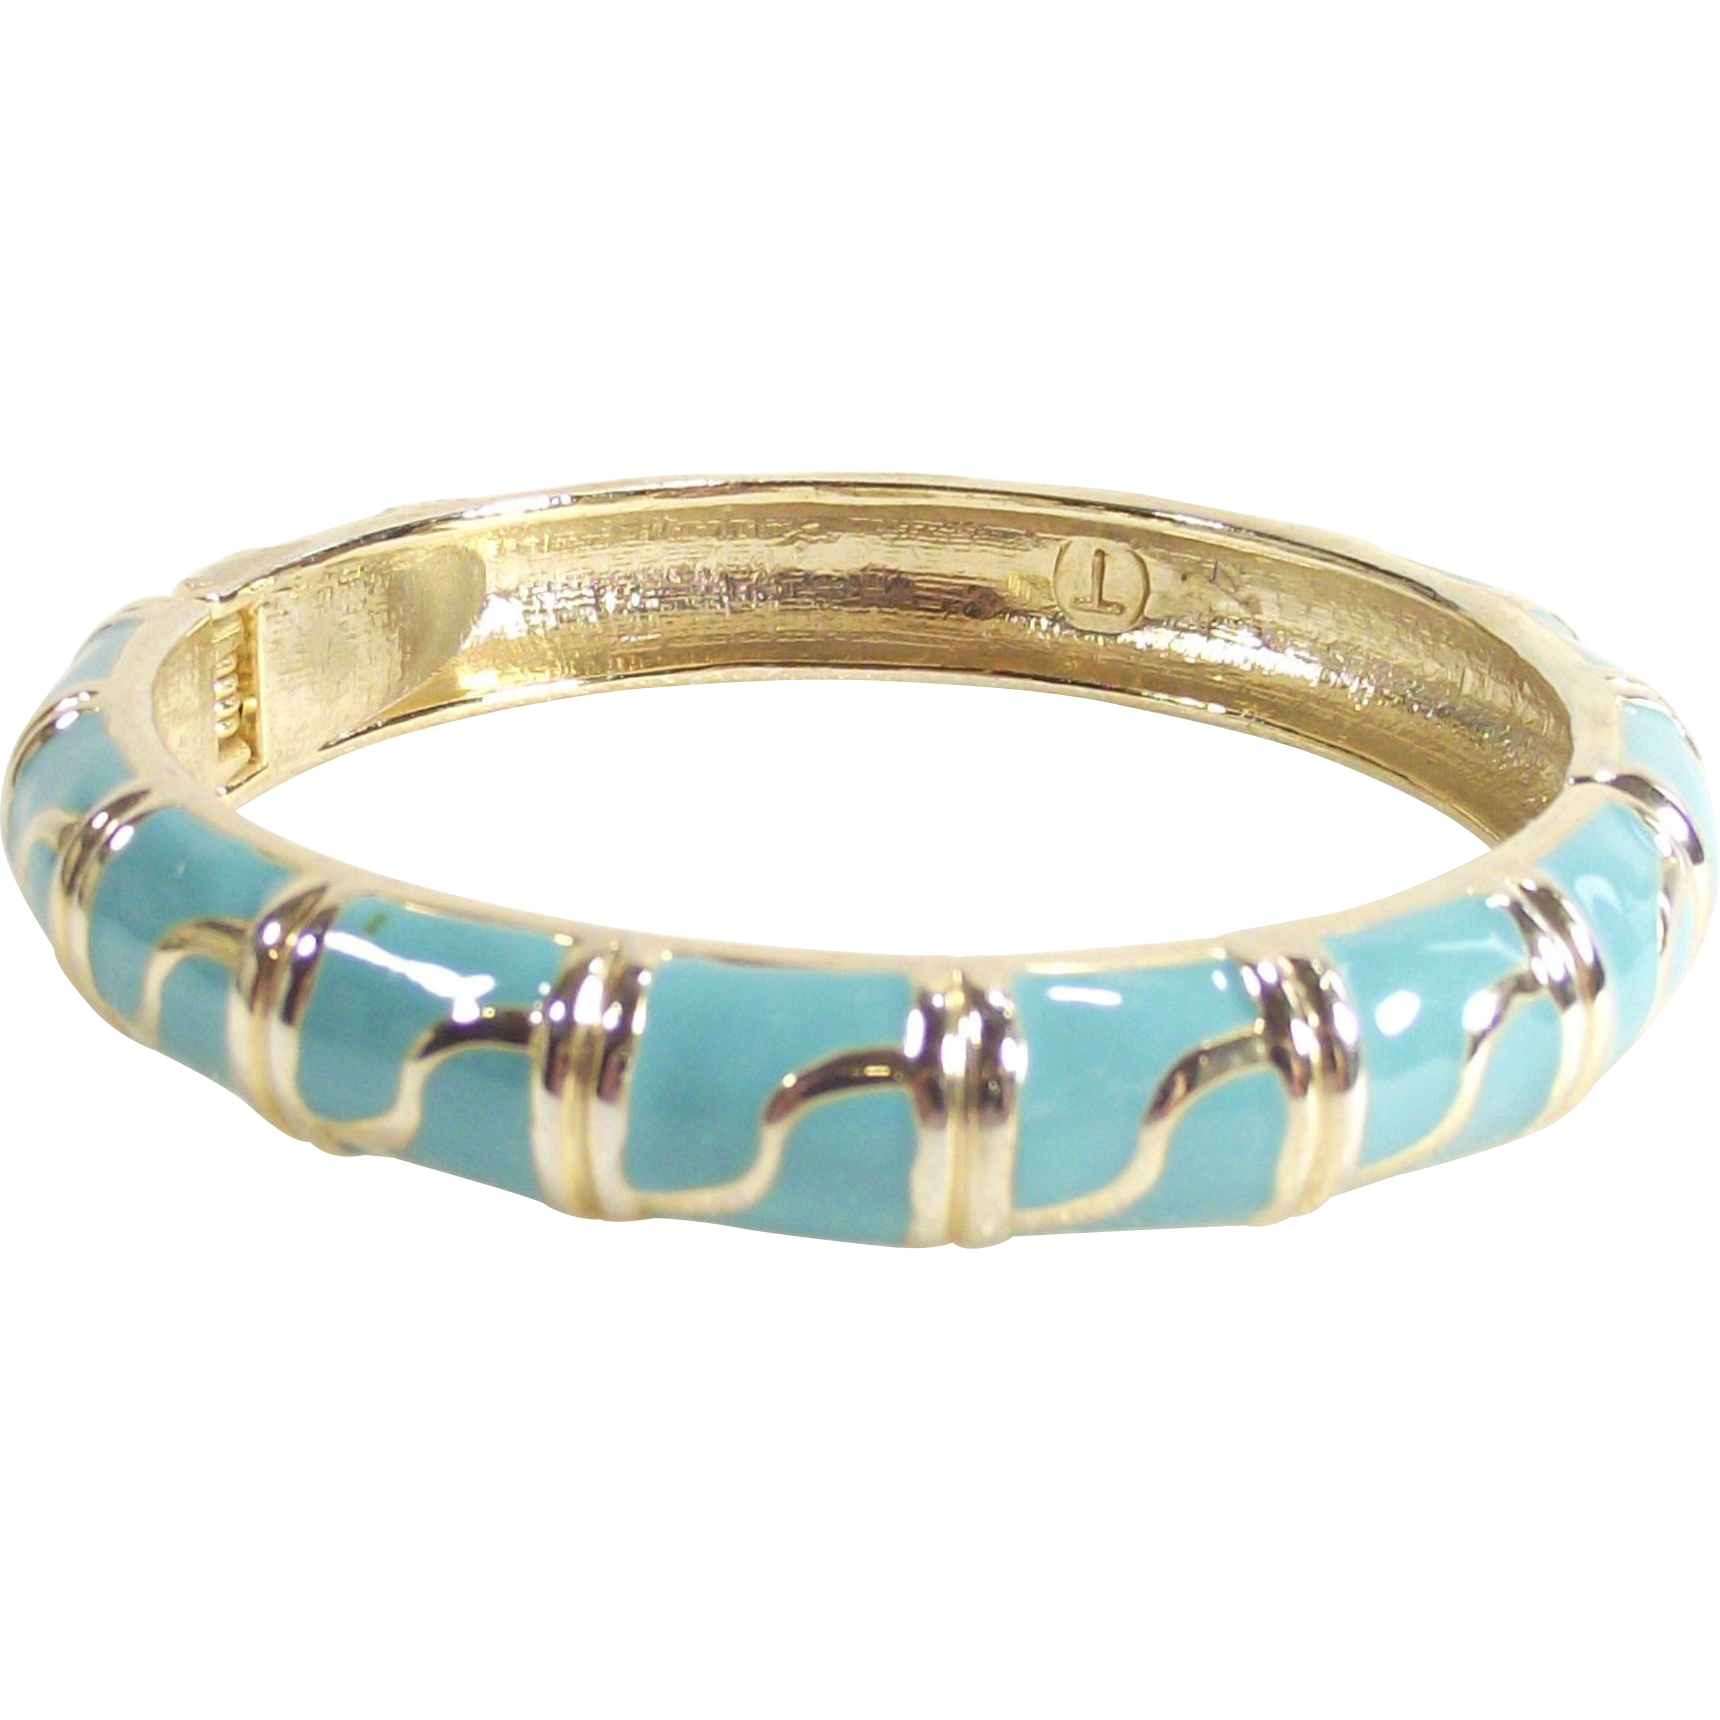 Vintage Turquoise and Gold Tone Enamel Clapper Style Bangle Bracelet